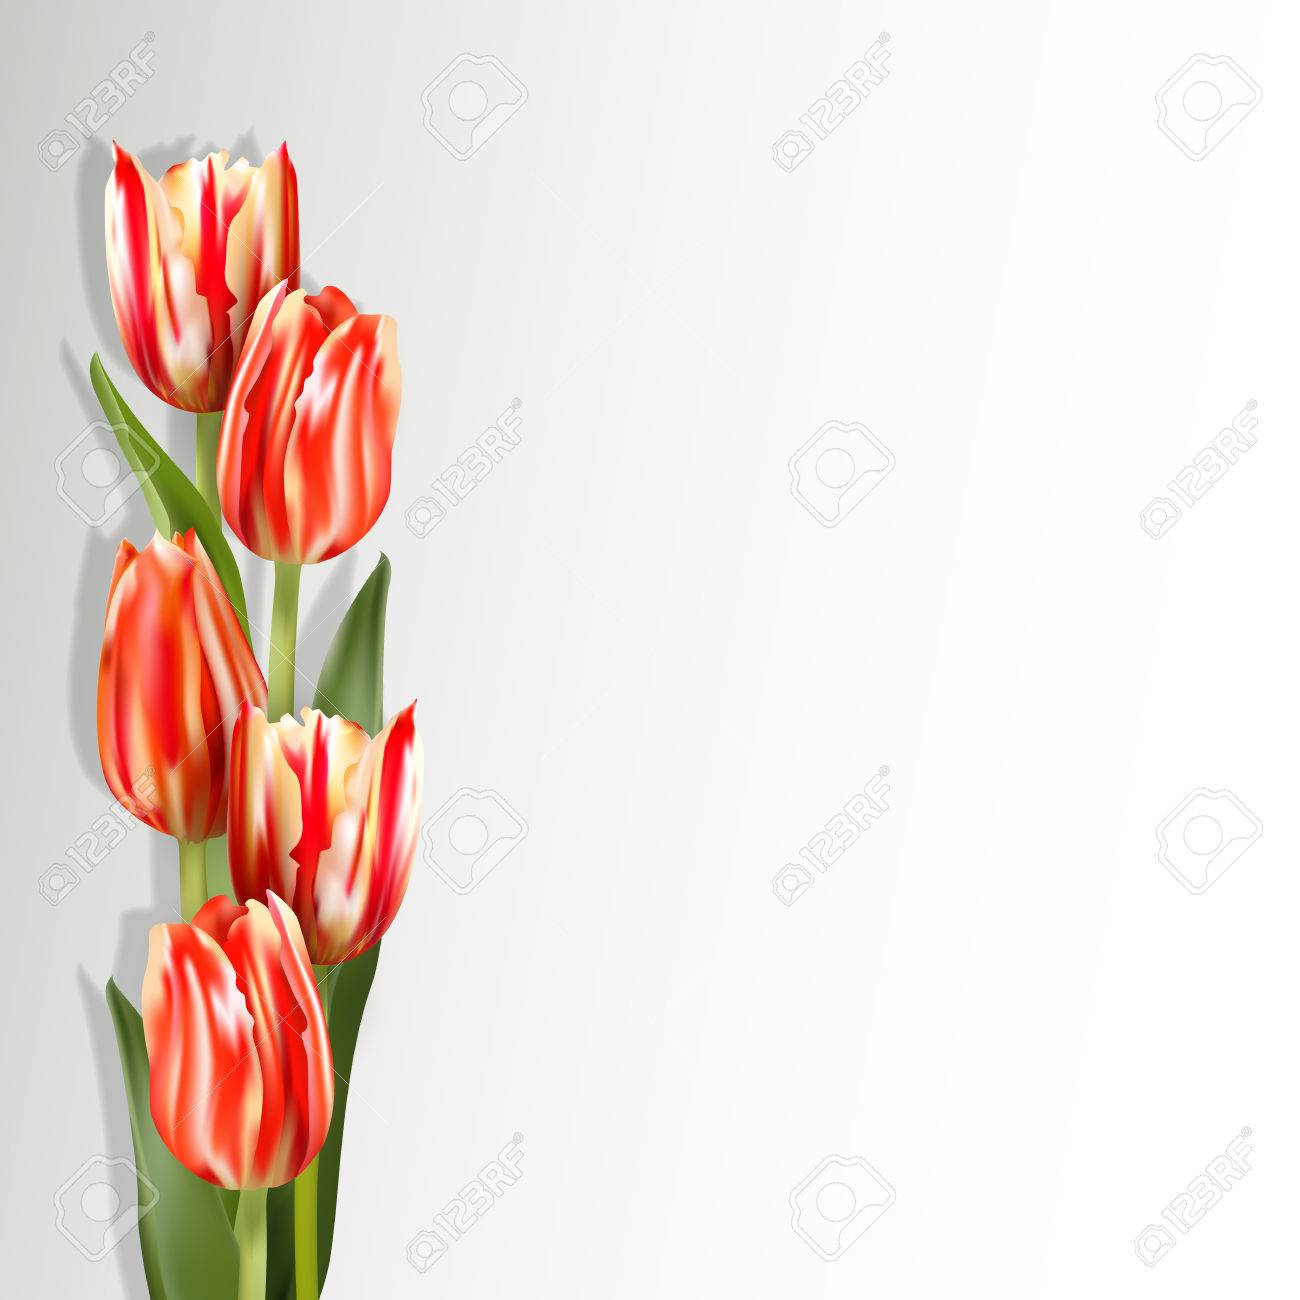 669136e4fc896 Red tulips on a light background with shadow. Motley red flowers on the  left side